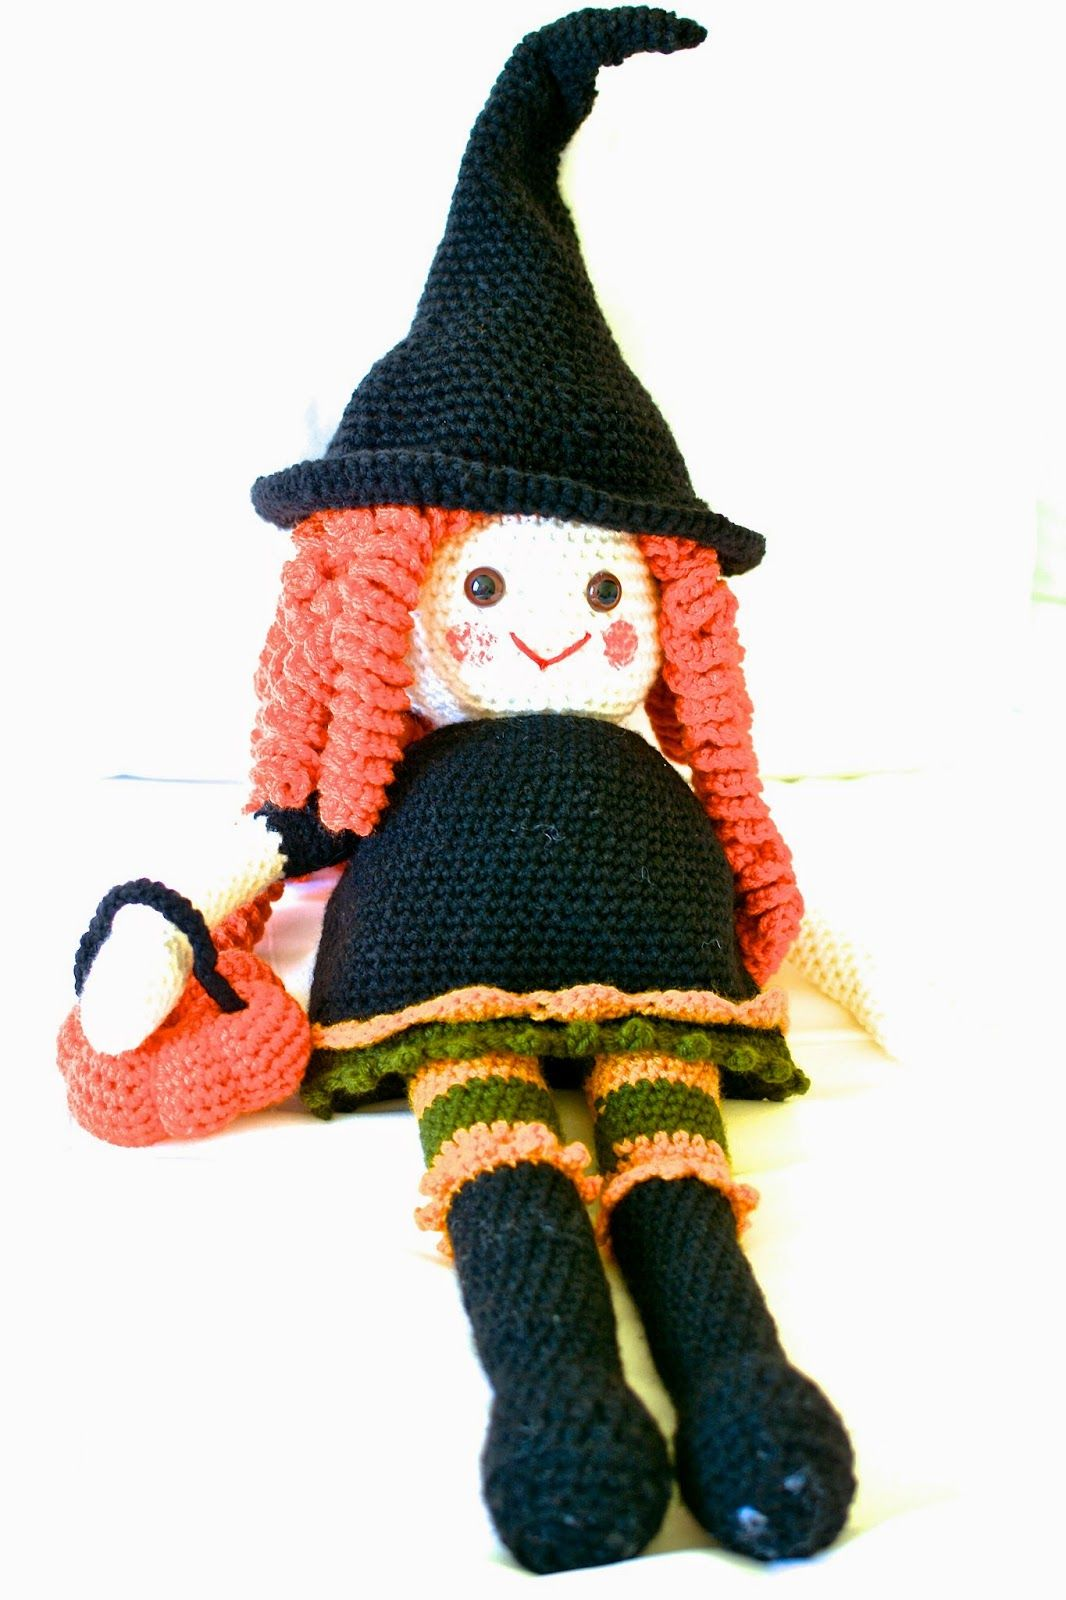 Tutorial Amigurumi Bruja Witch : Annoos Crochet World: Clementine the Friendly Witch Doll ...